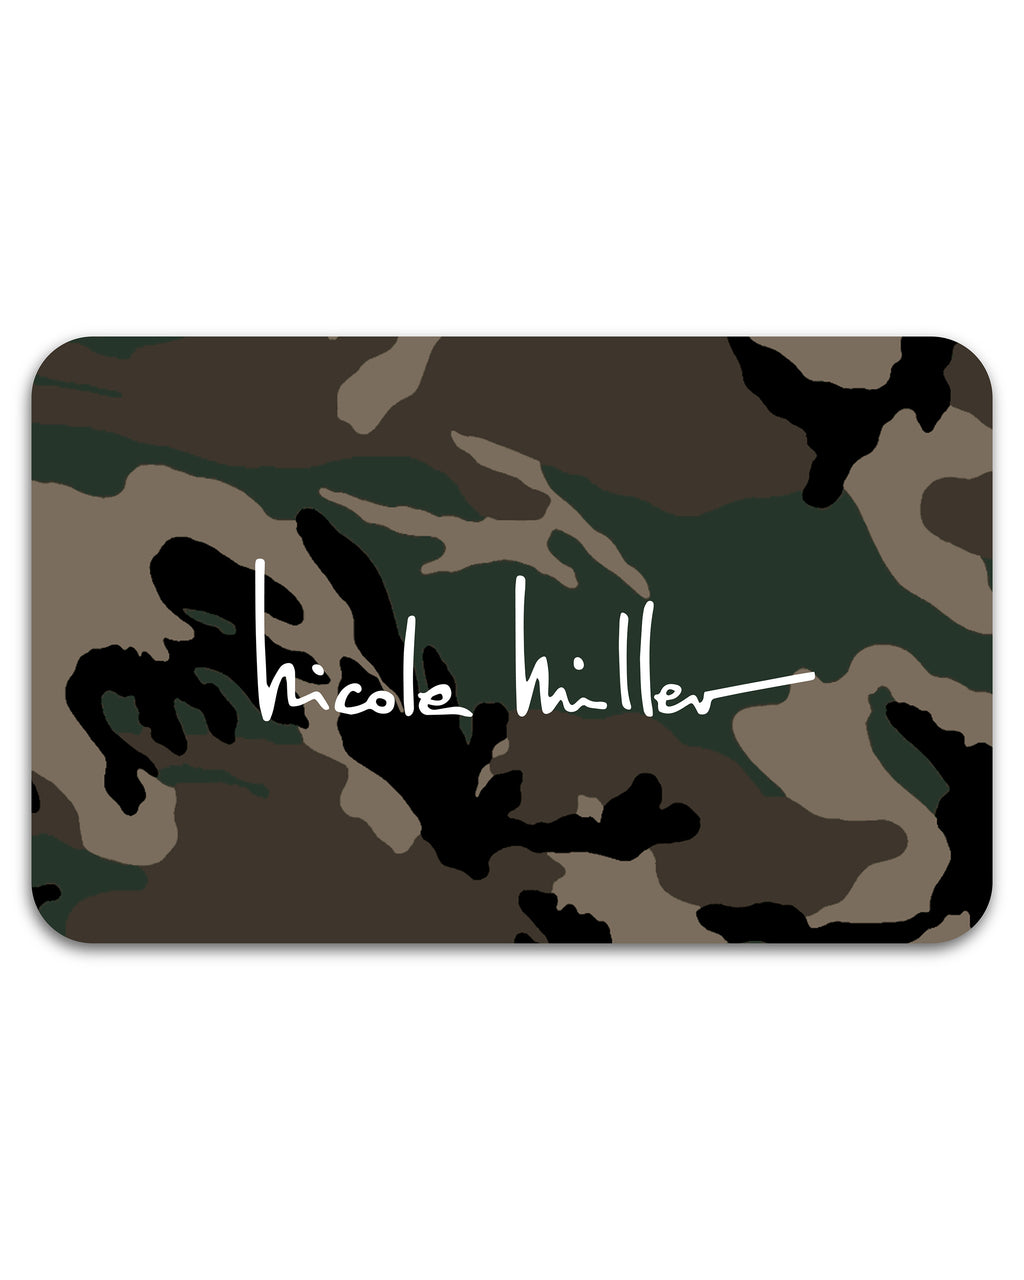 $500 Nicole Miller E-gift Card Image 1